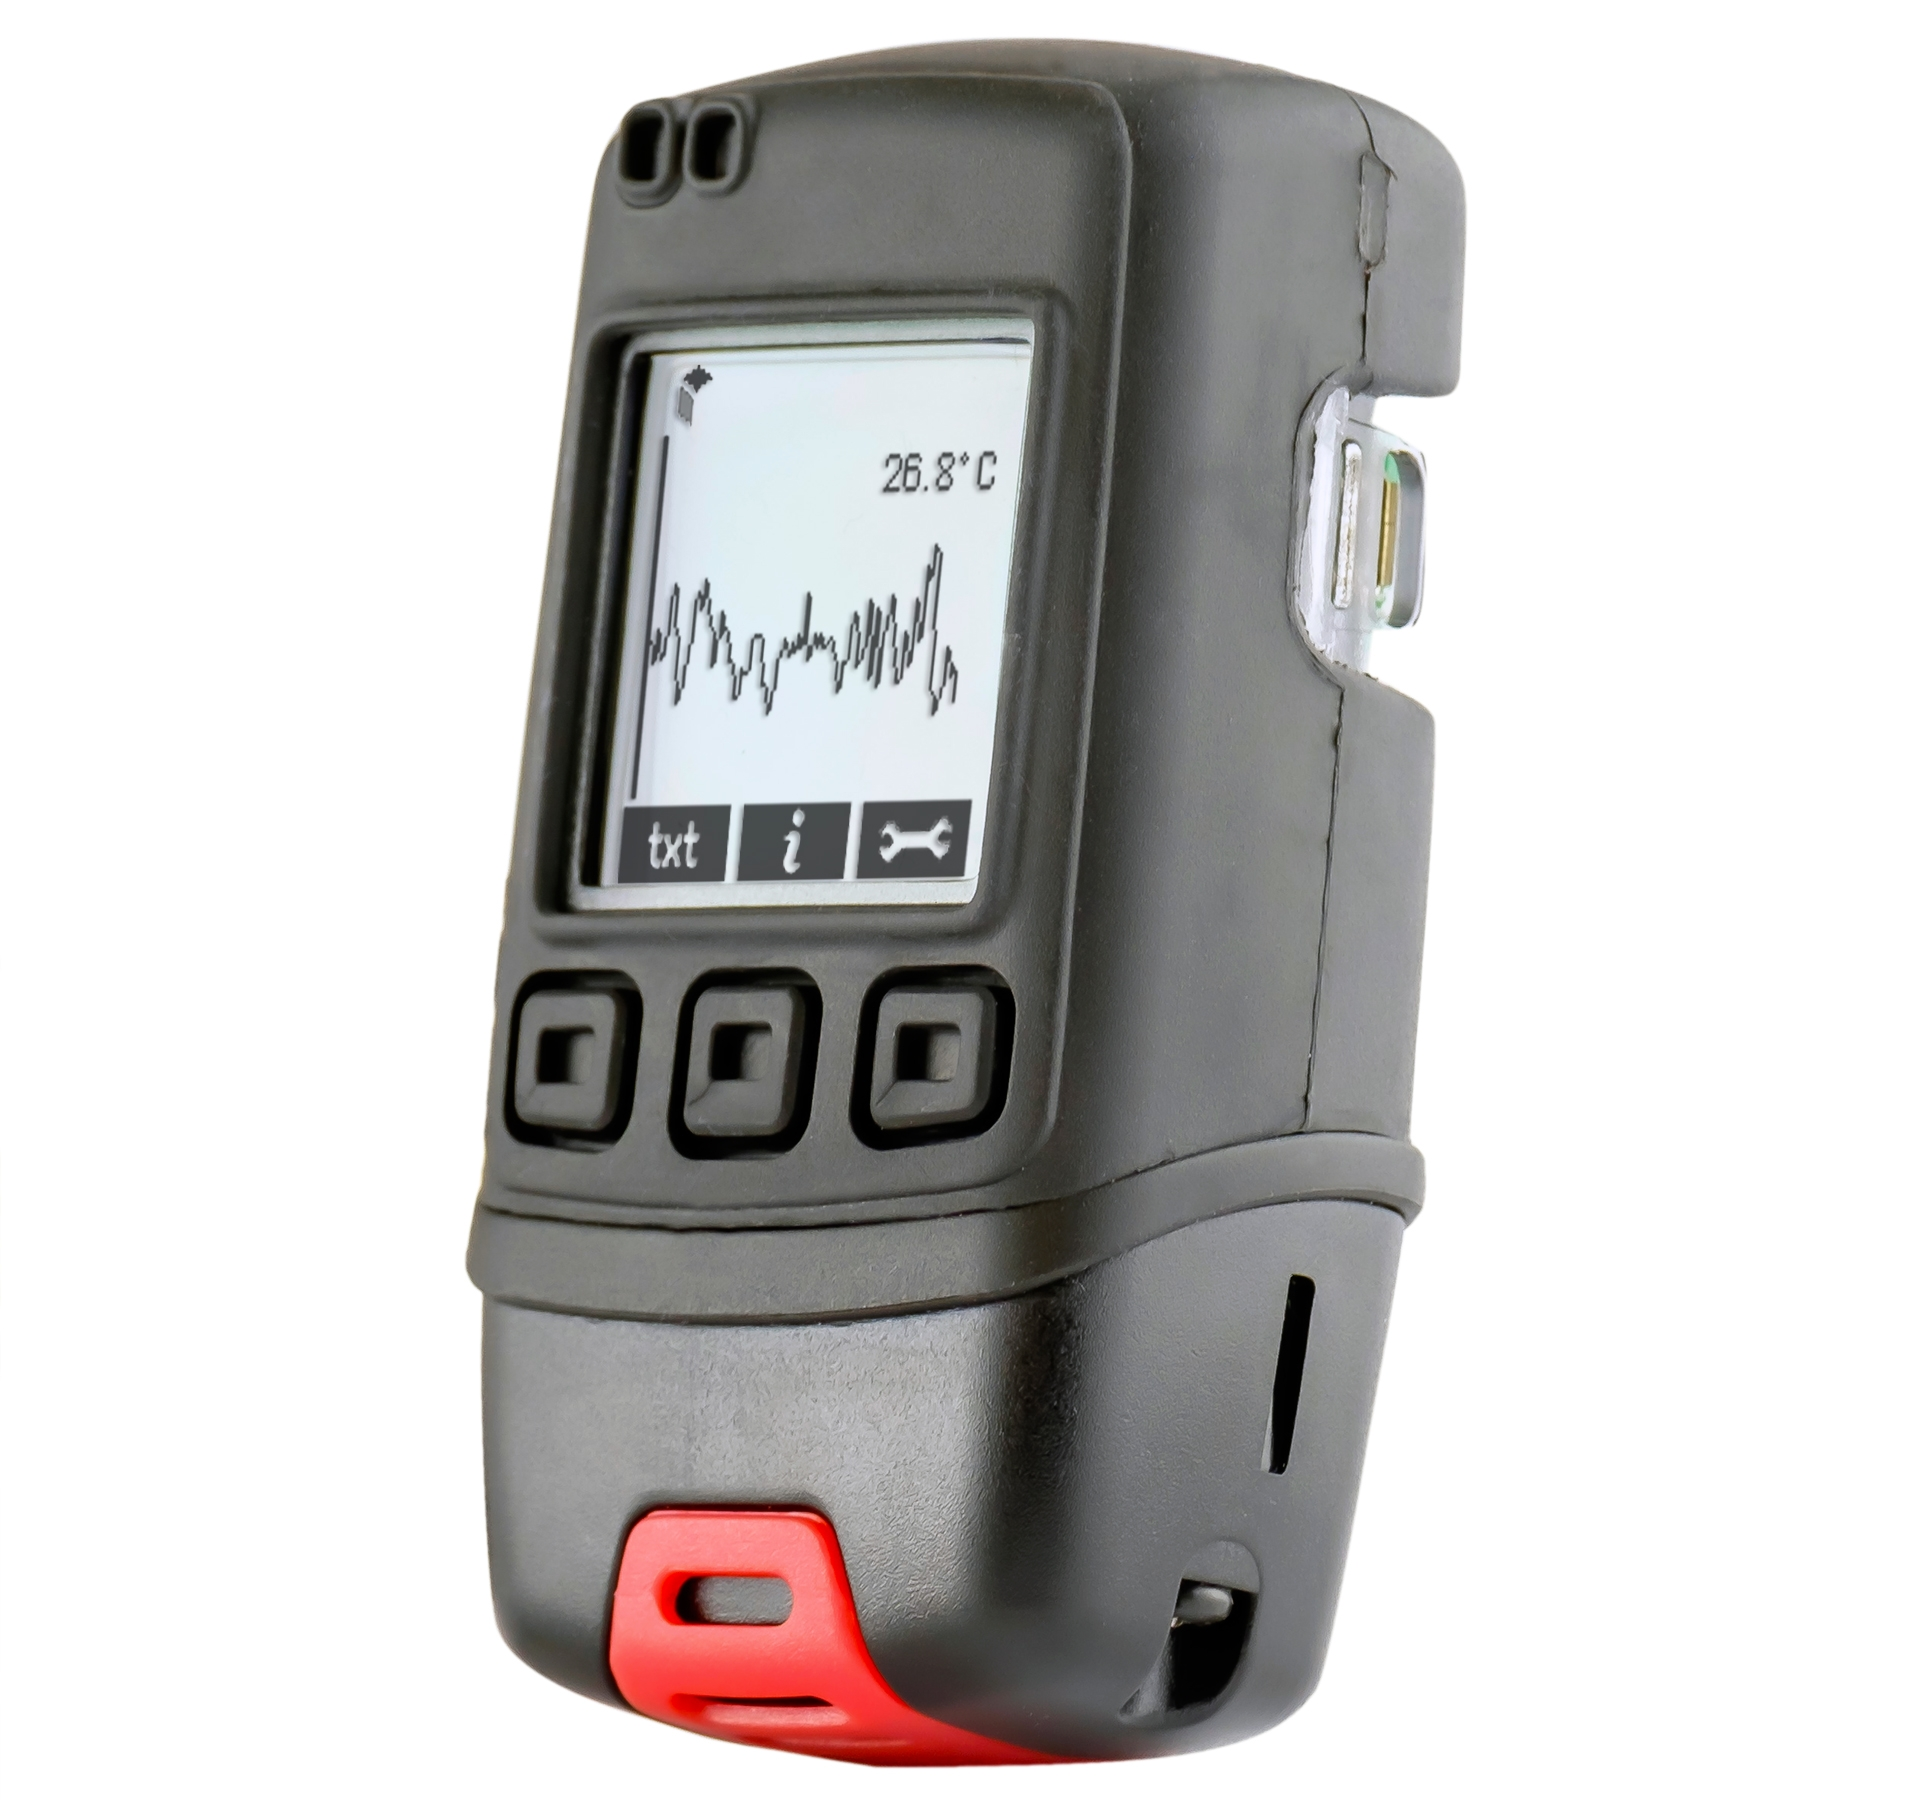 Lascar El Gfx 1 Temperature Data Logger With Graphic Screen Pic If You Have Any Questions Please Contact Us By This Form